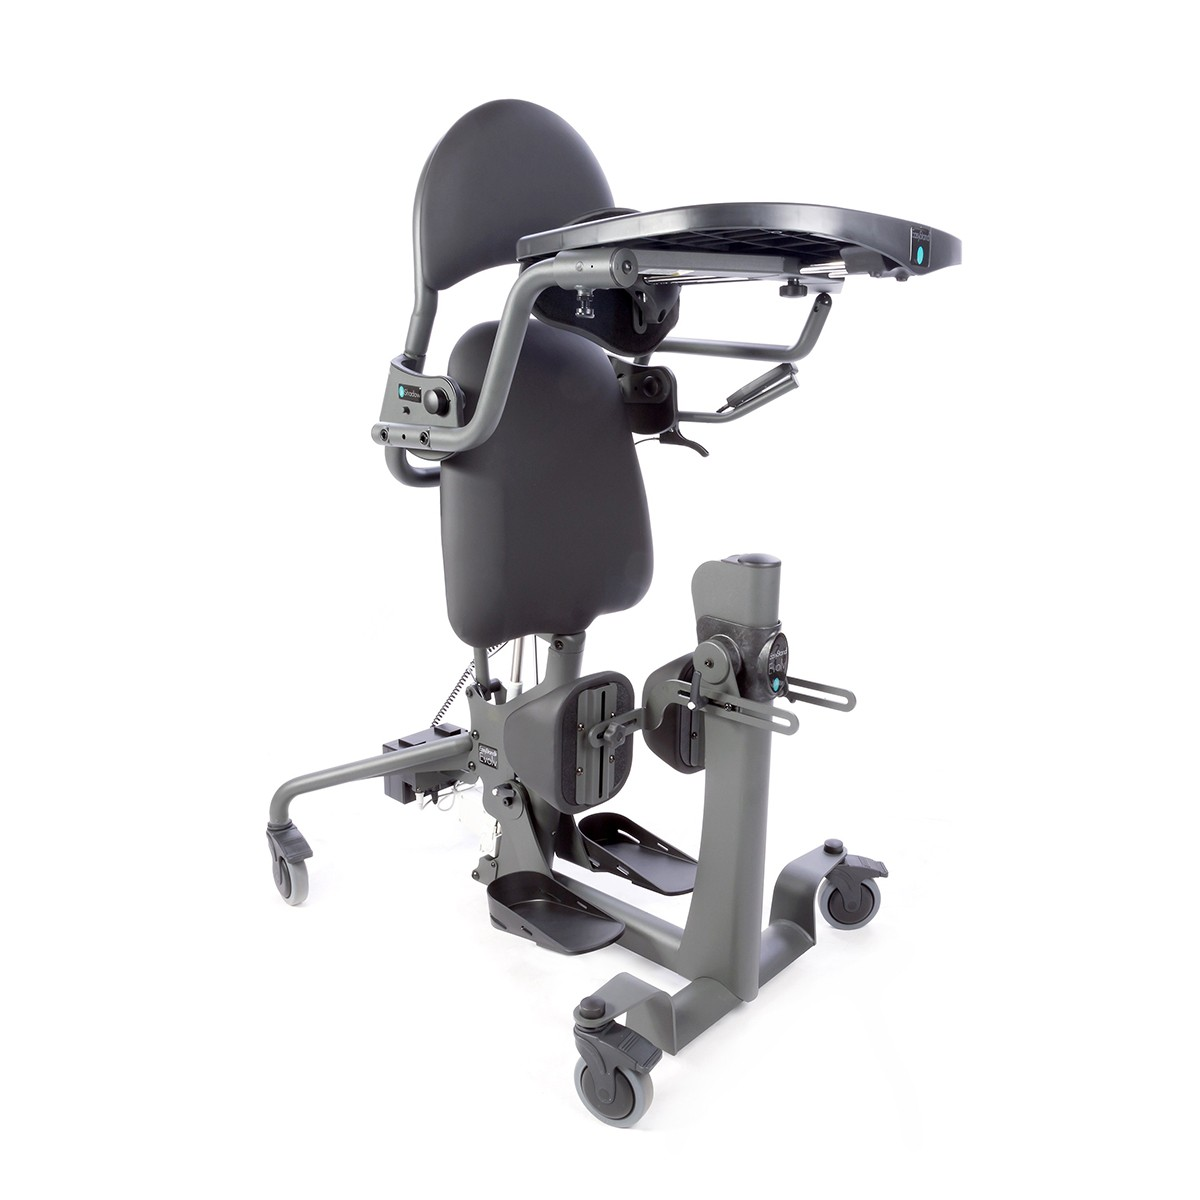 easy pivot patient lift model ep-260 manual